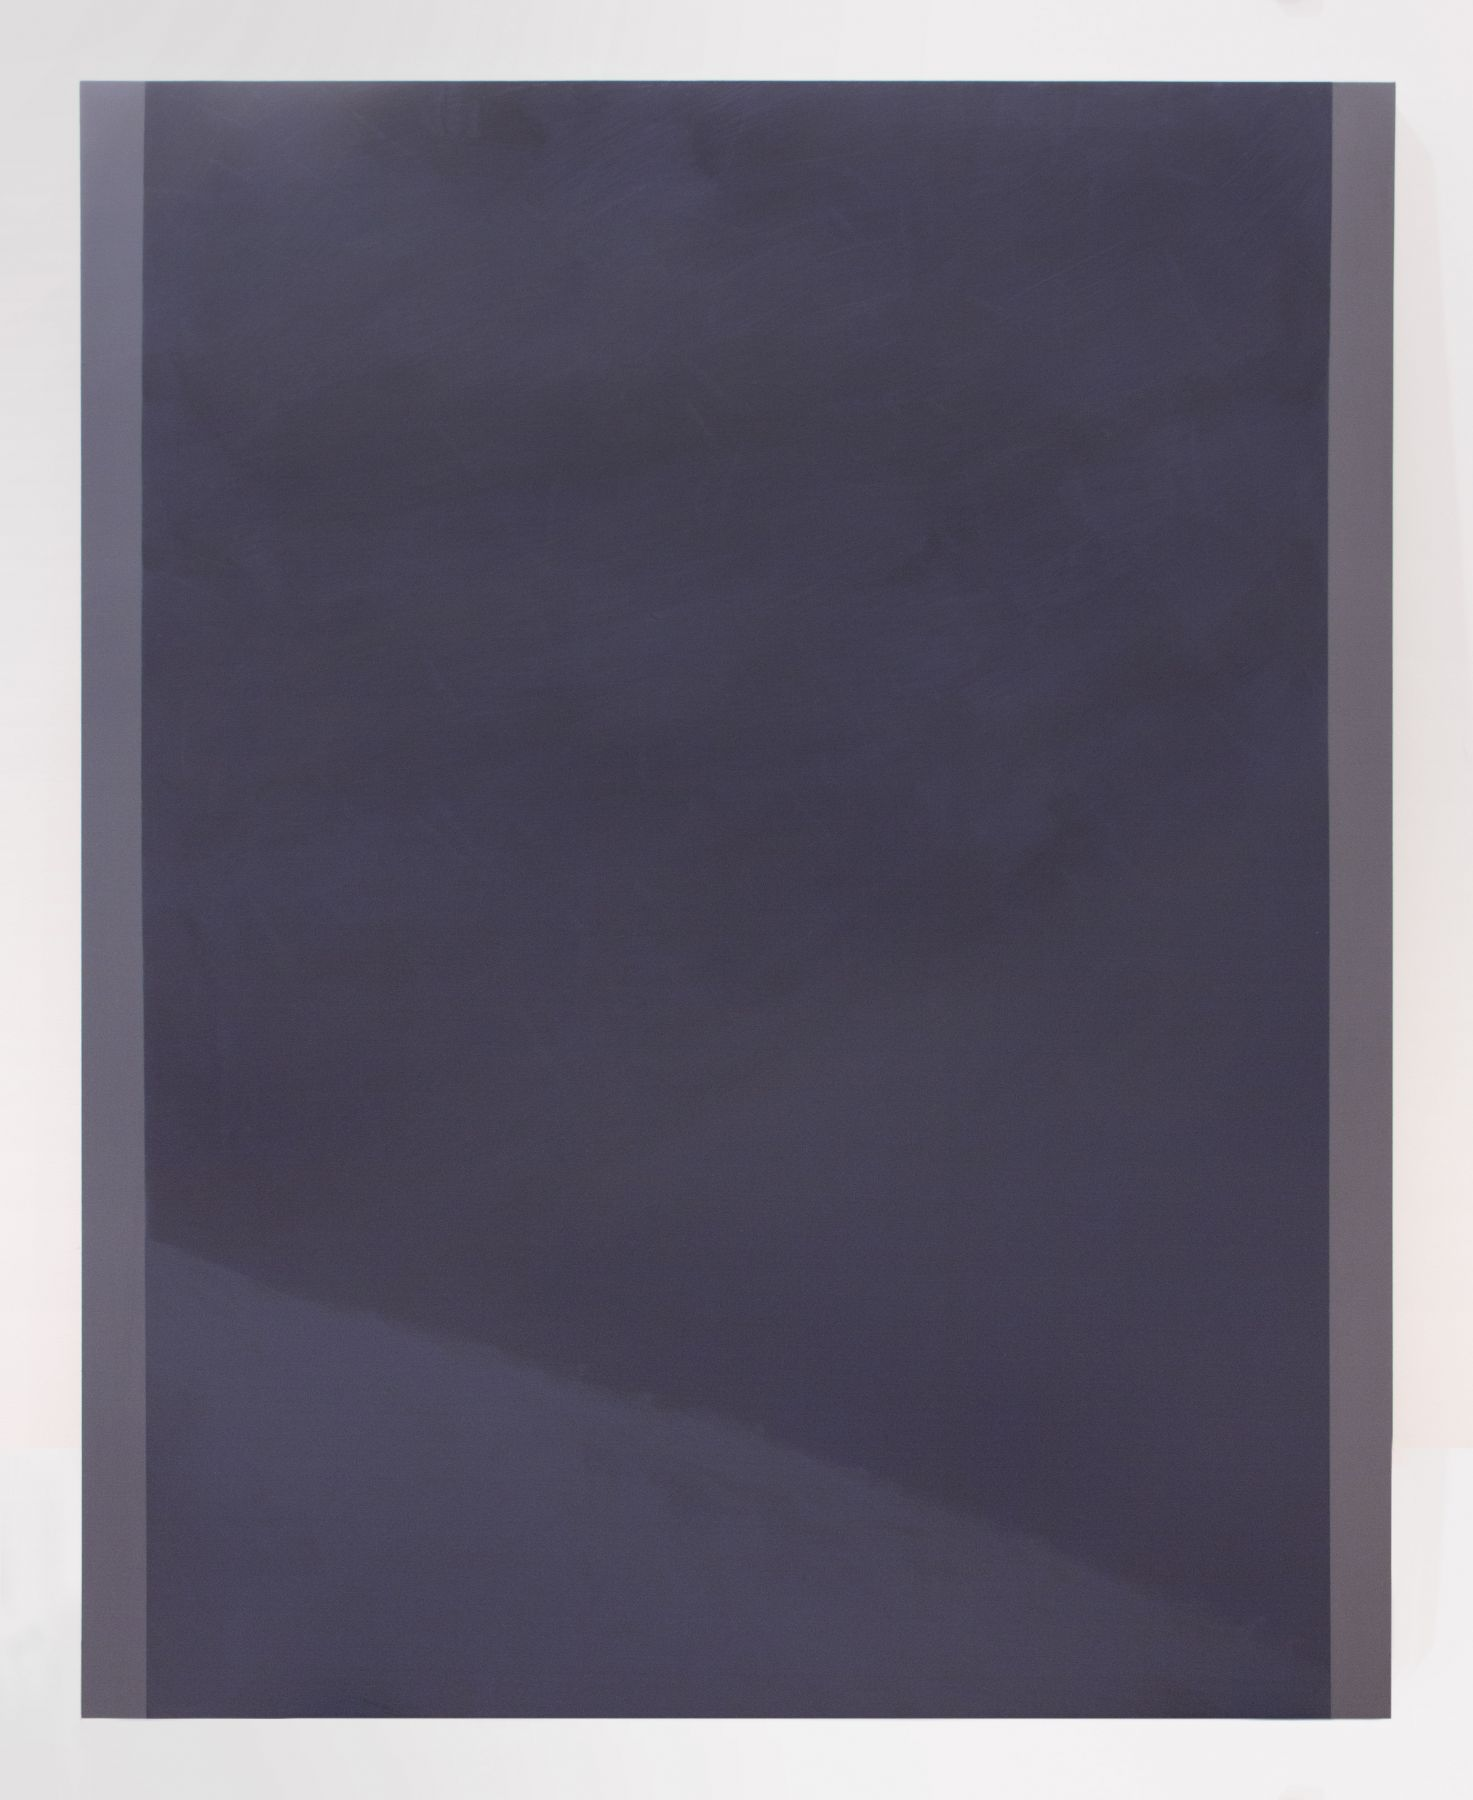 BYRON KIMLayl Almadina (Clouds 2)Acrylic on canvas mounted on panel60 x 48152.4 x 121.9 cm JCG7642